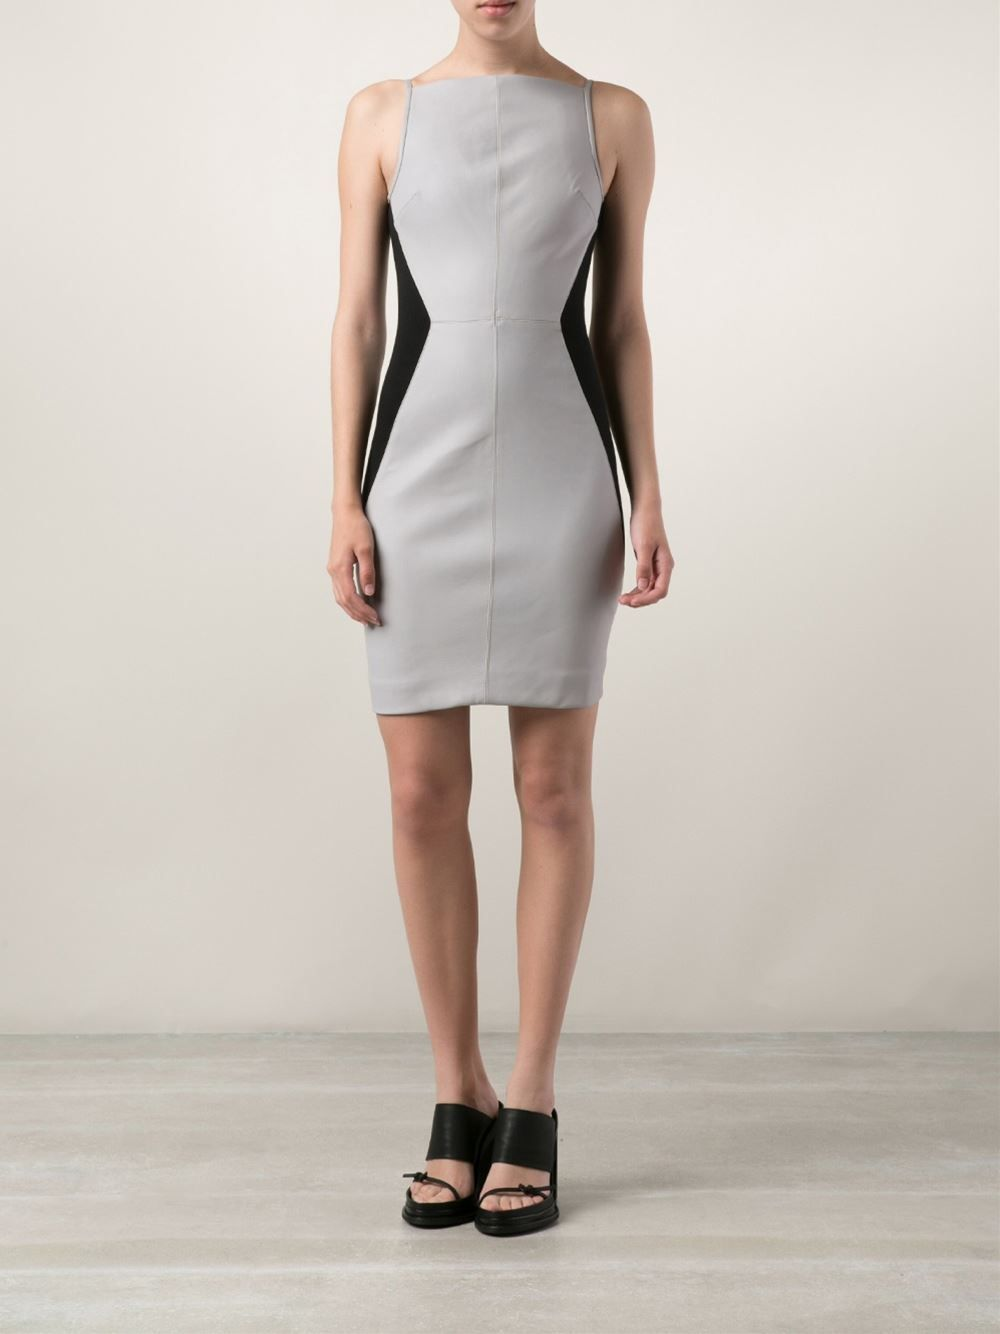 Gareth Pugh Bodycon Dress - Odd. - Farfetch.com